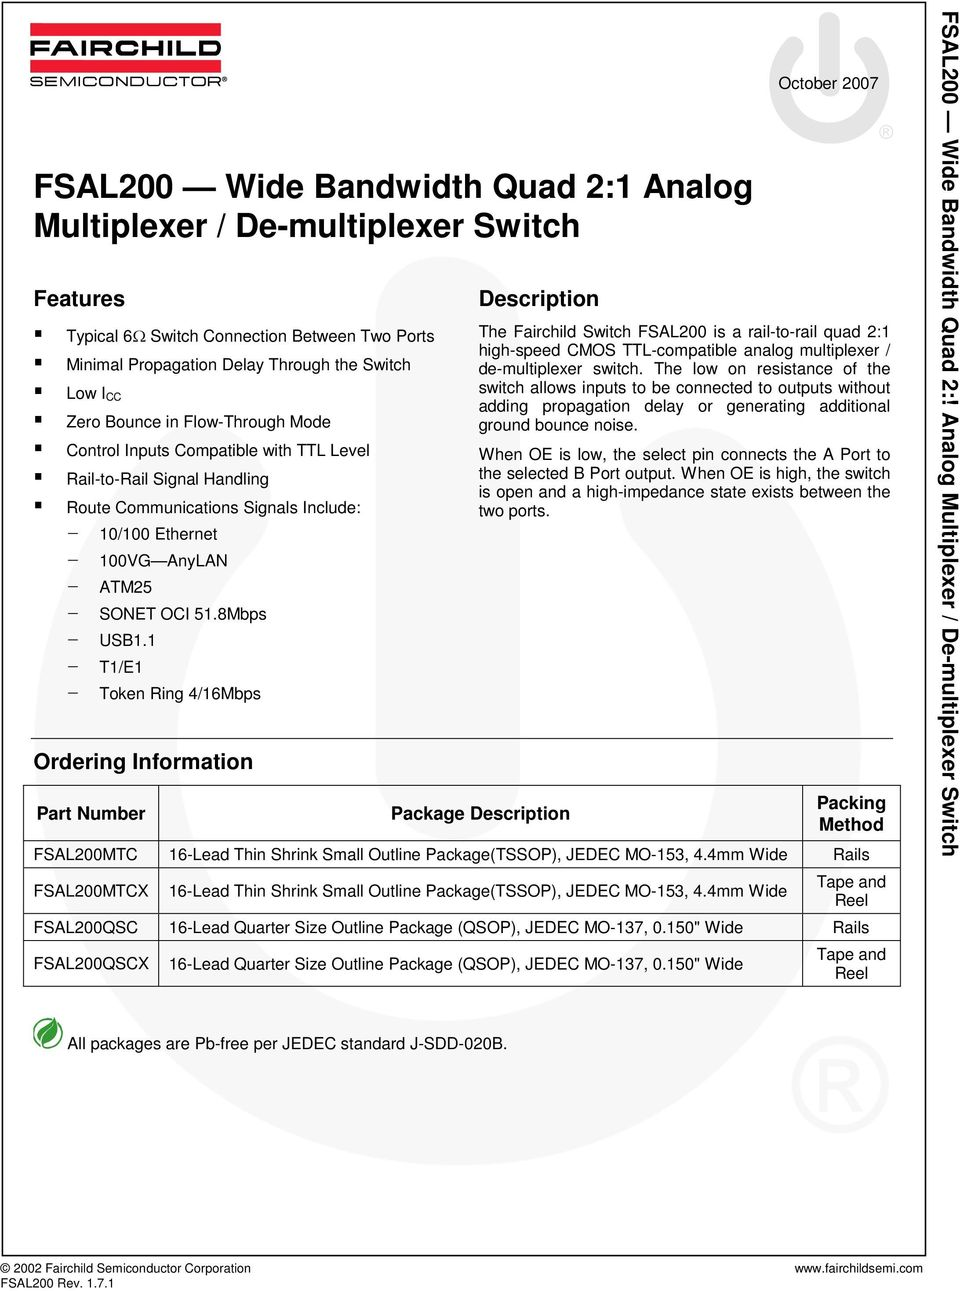 1 - T1/E1 - Token Ring 4/16Mbps Ordering Information Part Number Description October 2007 The Fairchild Switch FSAL200 is a rail-to-rail quad 2:1 high-speed CMOS TTL-compatible analog multiplexer /